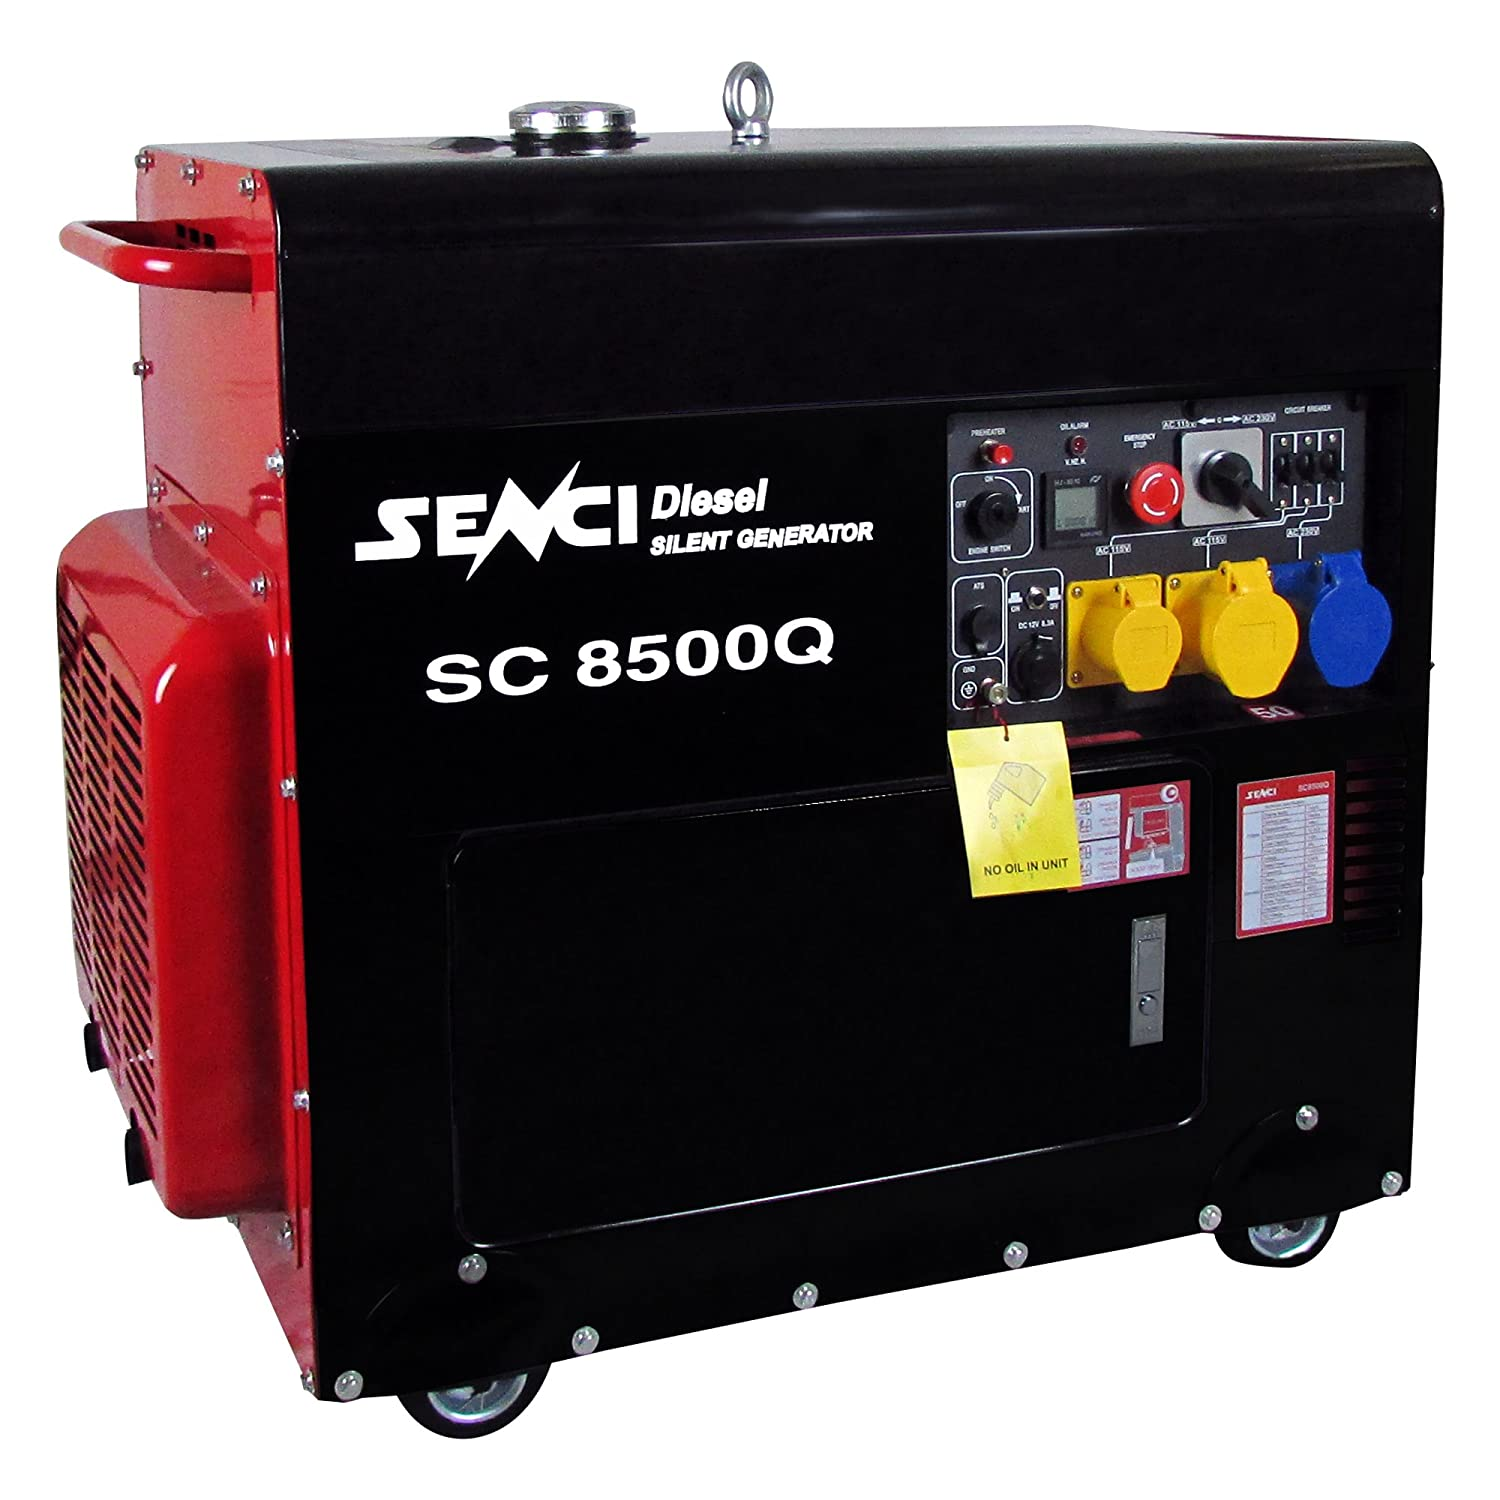 Senci SC8500Q Silent Diesel Generator Amazon Garden & Outdoors